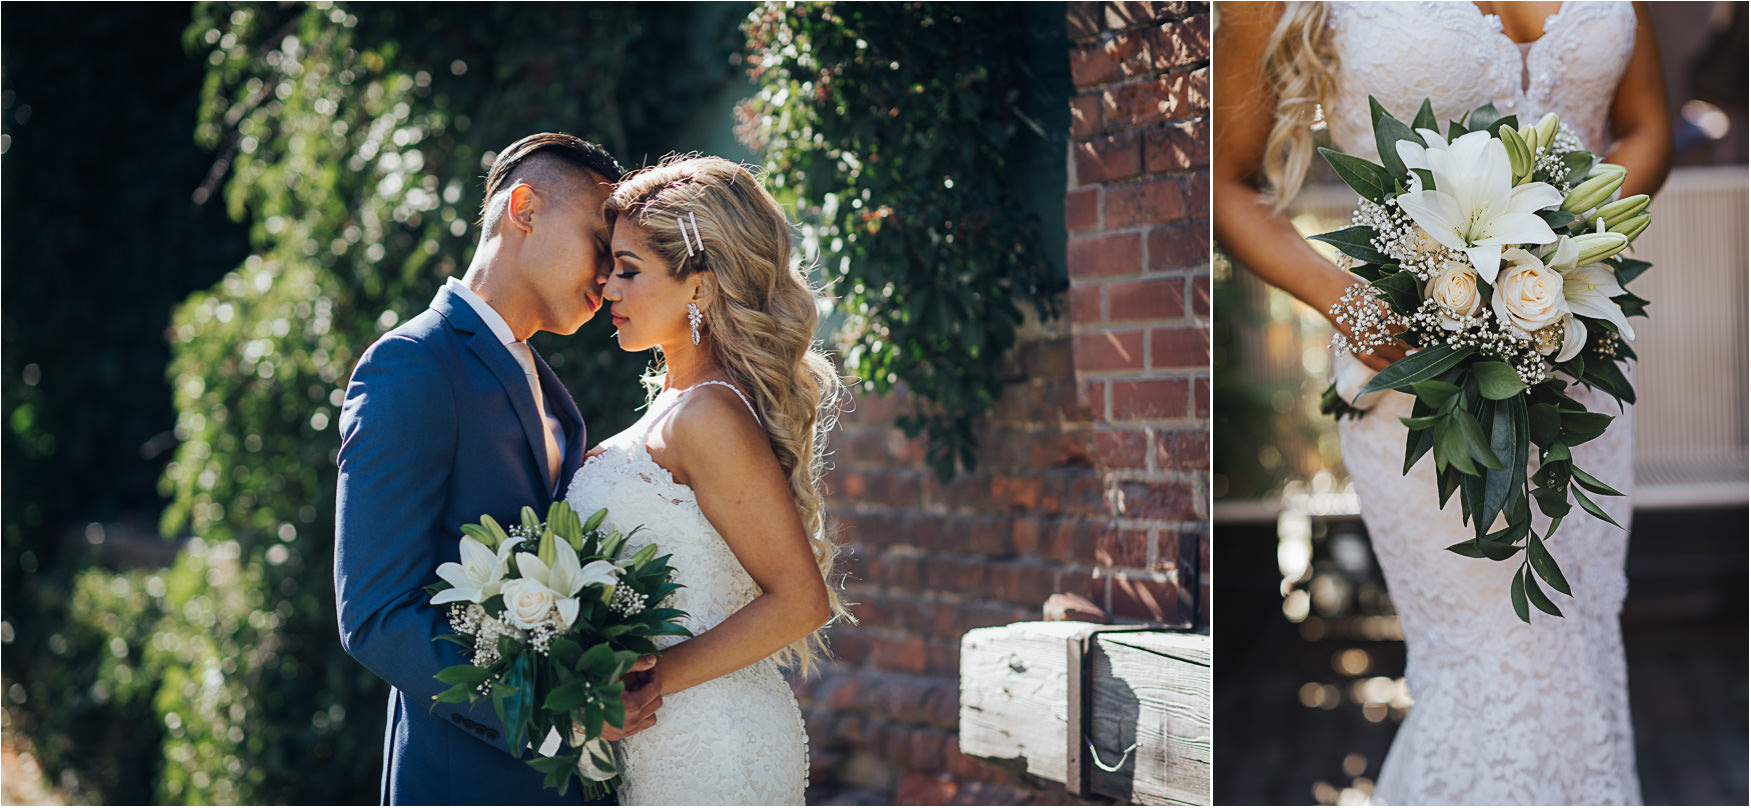 Wedding Portraits at the Toronto Distillery District